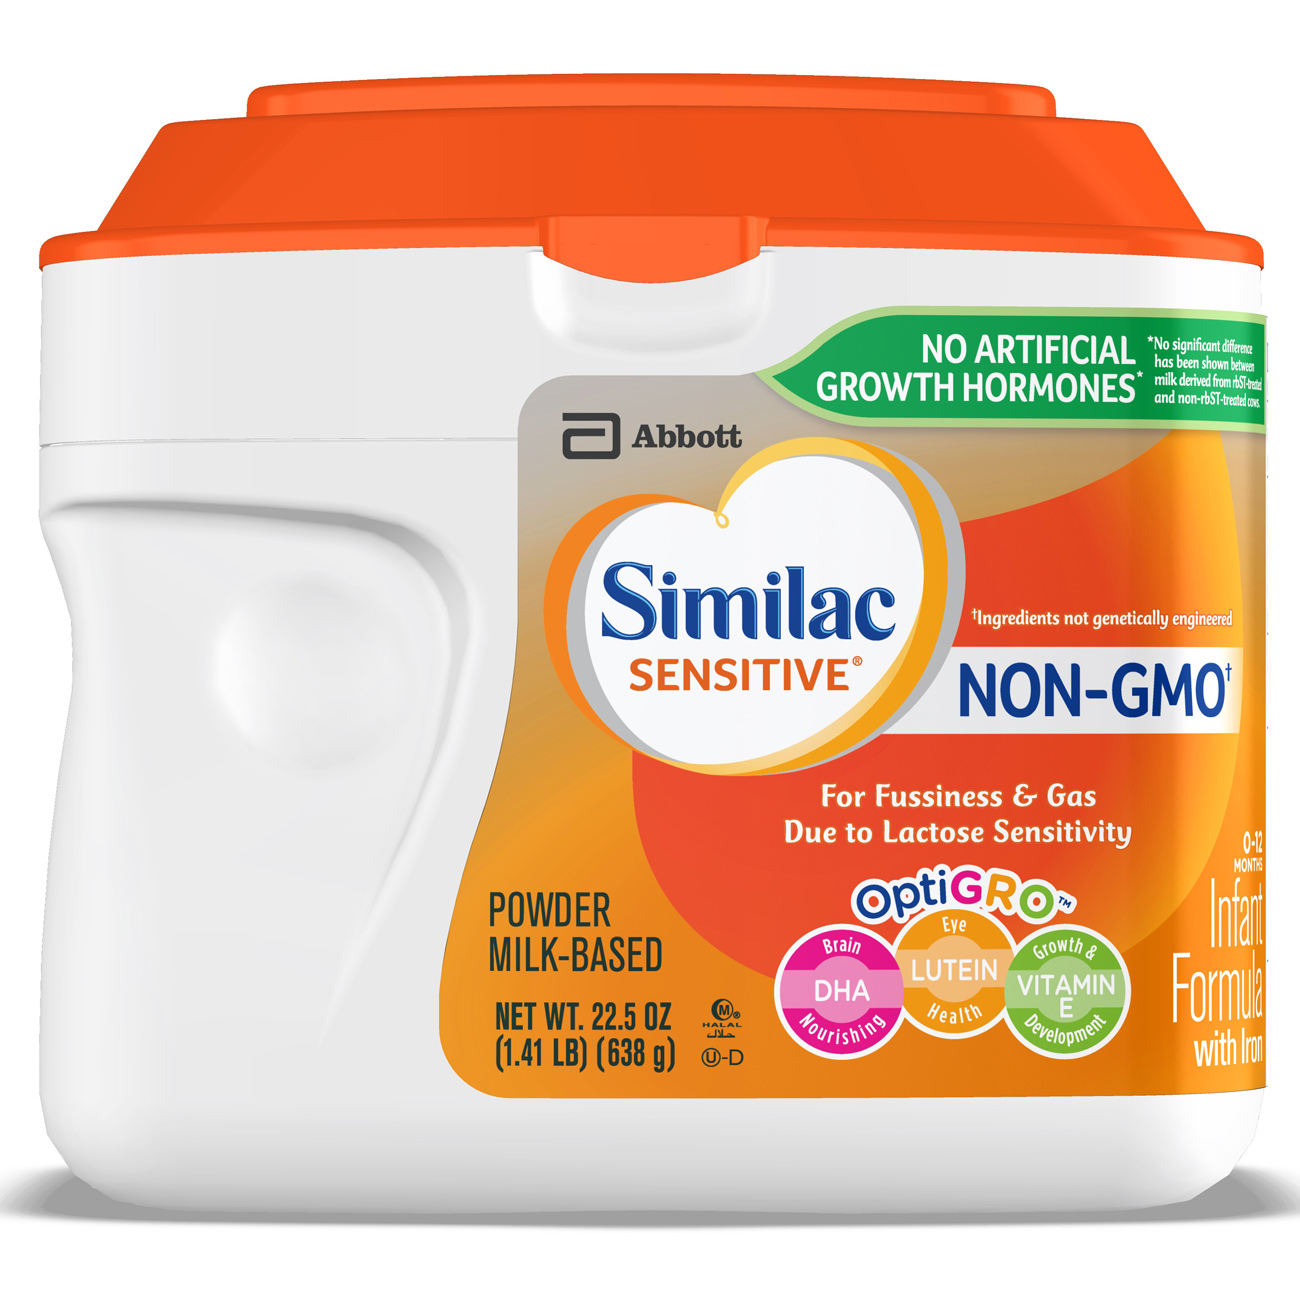 Similac Sensitive Milk-Based Infant Formula with Iron, Powder, 1.41 lb (Pack of 6) by Similac